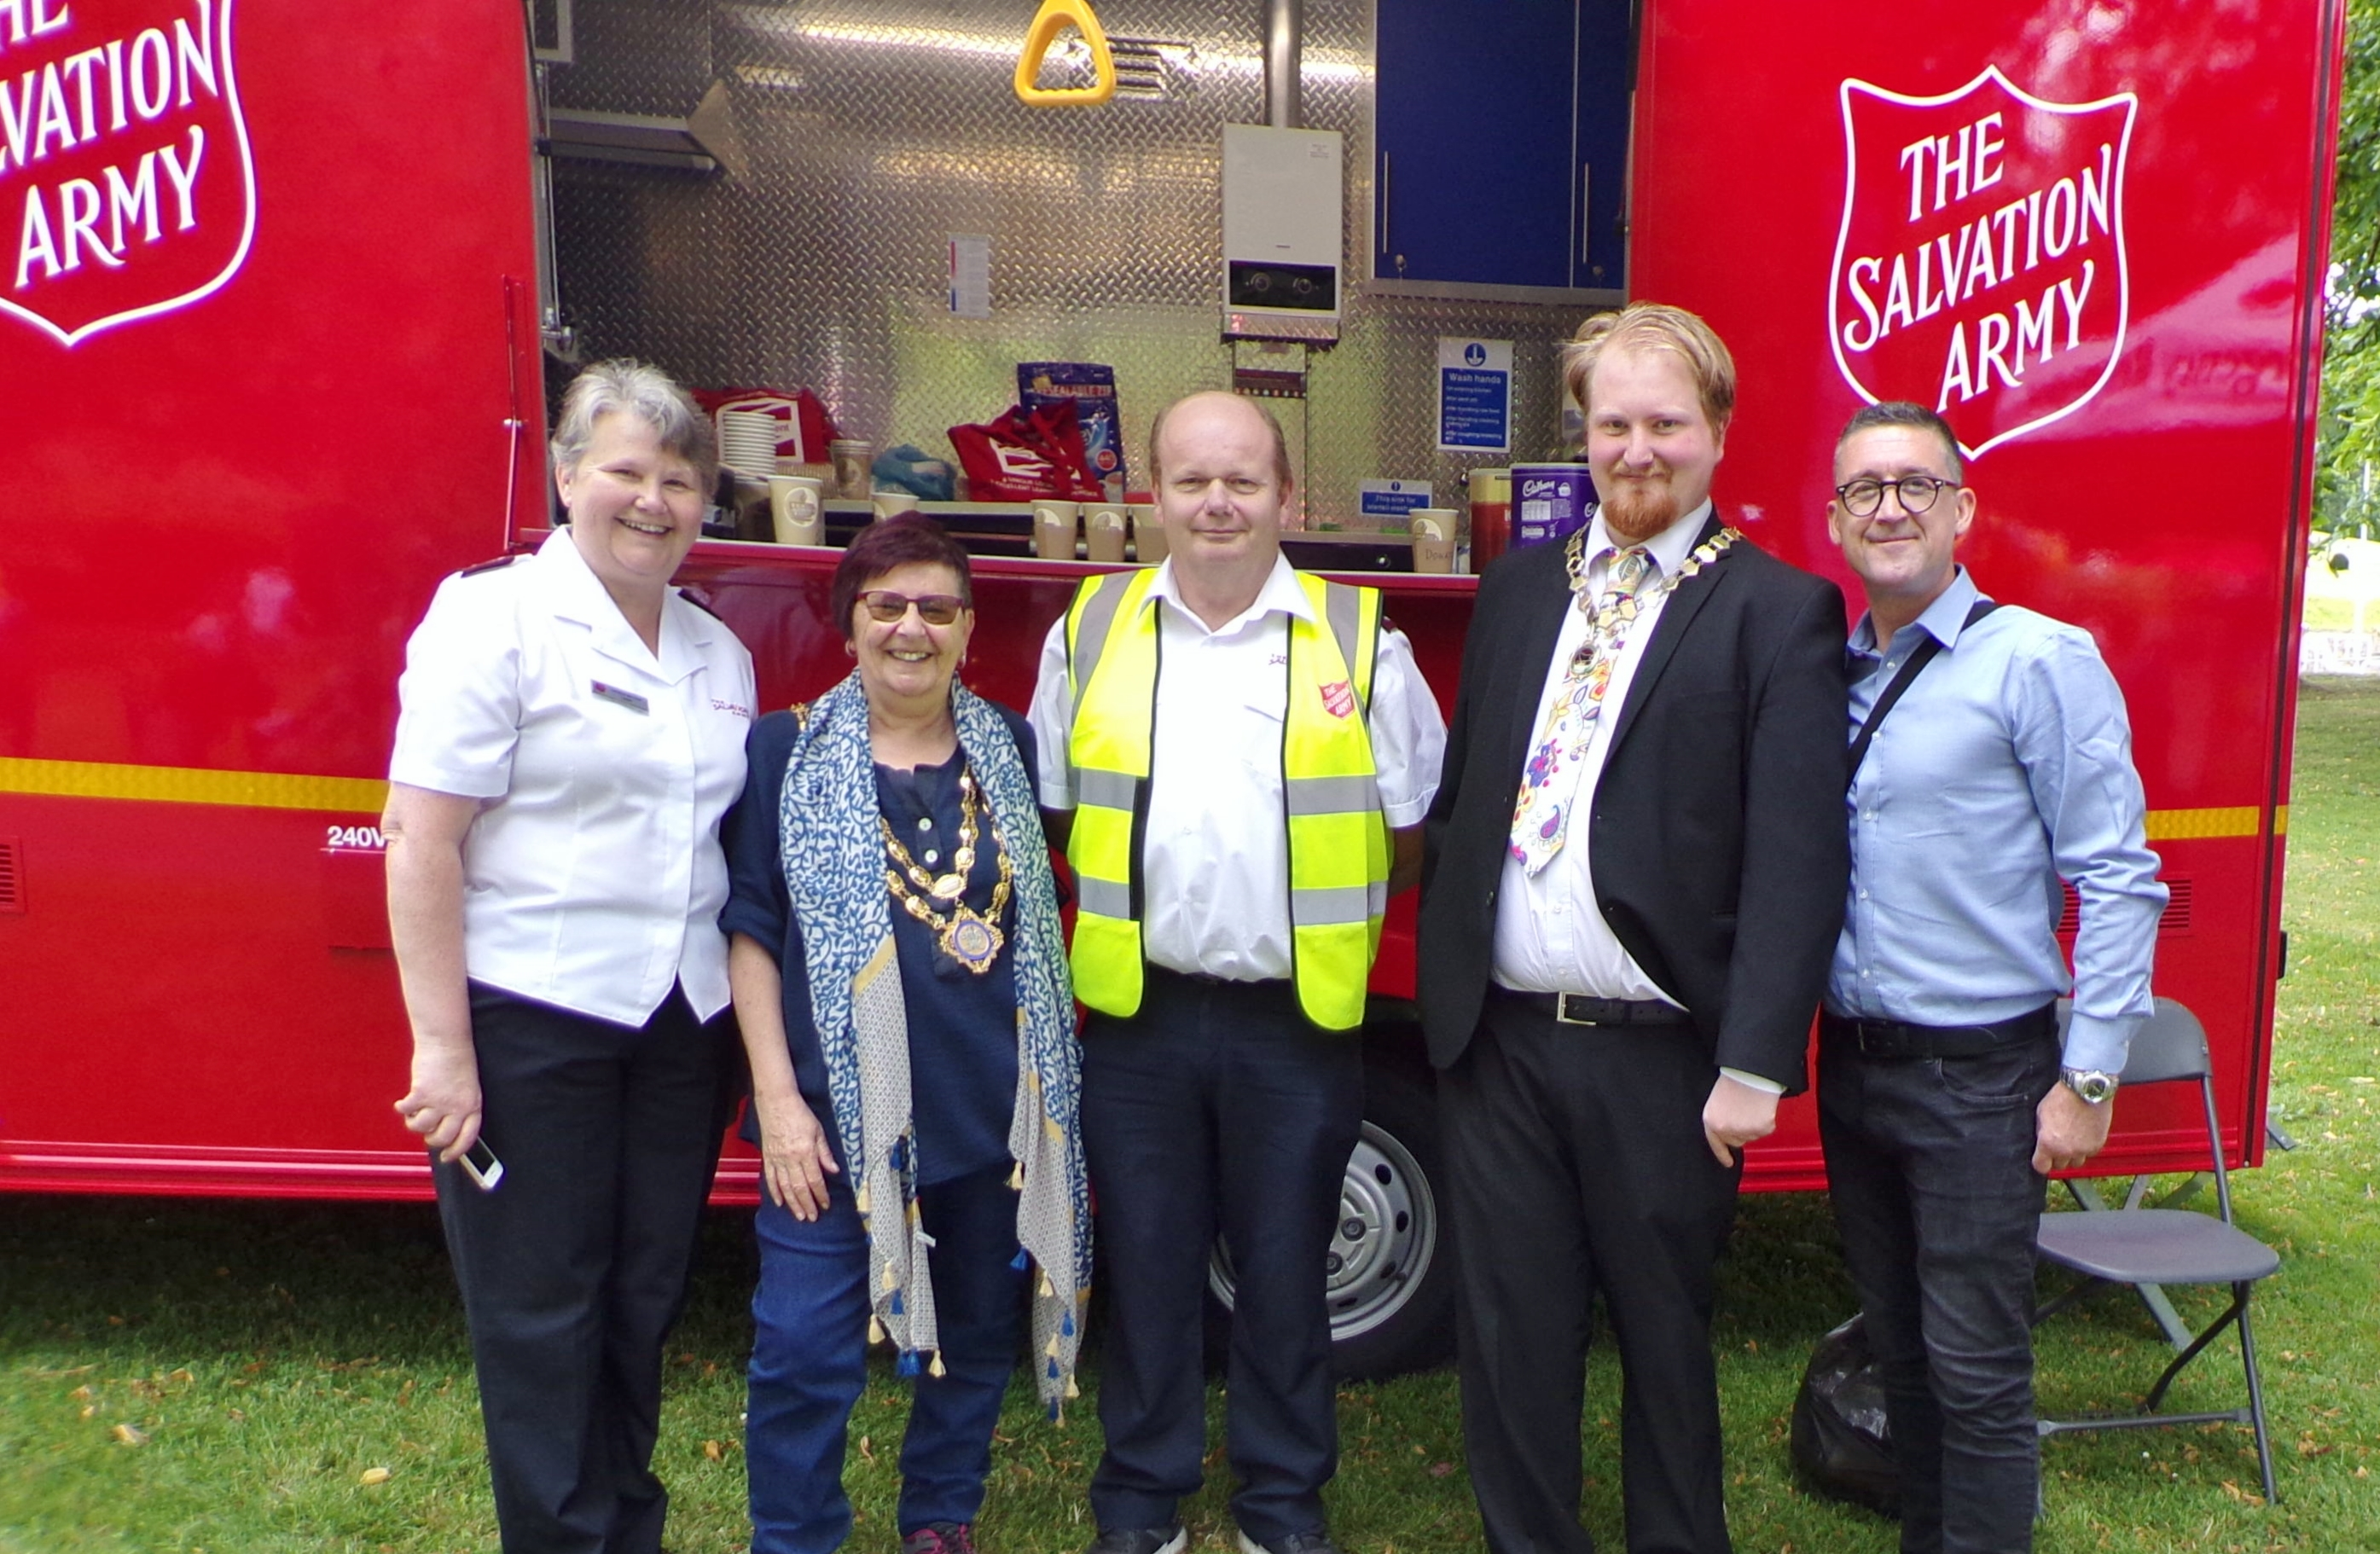 mayor at salvation army stand